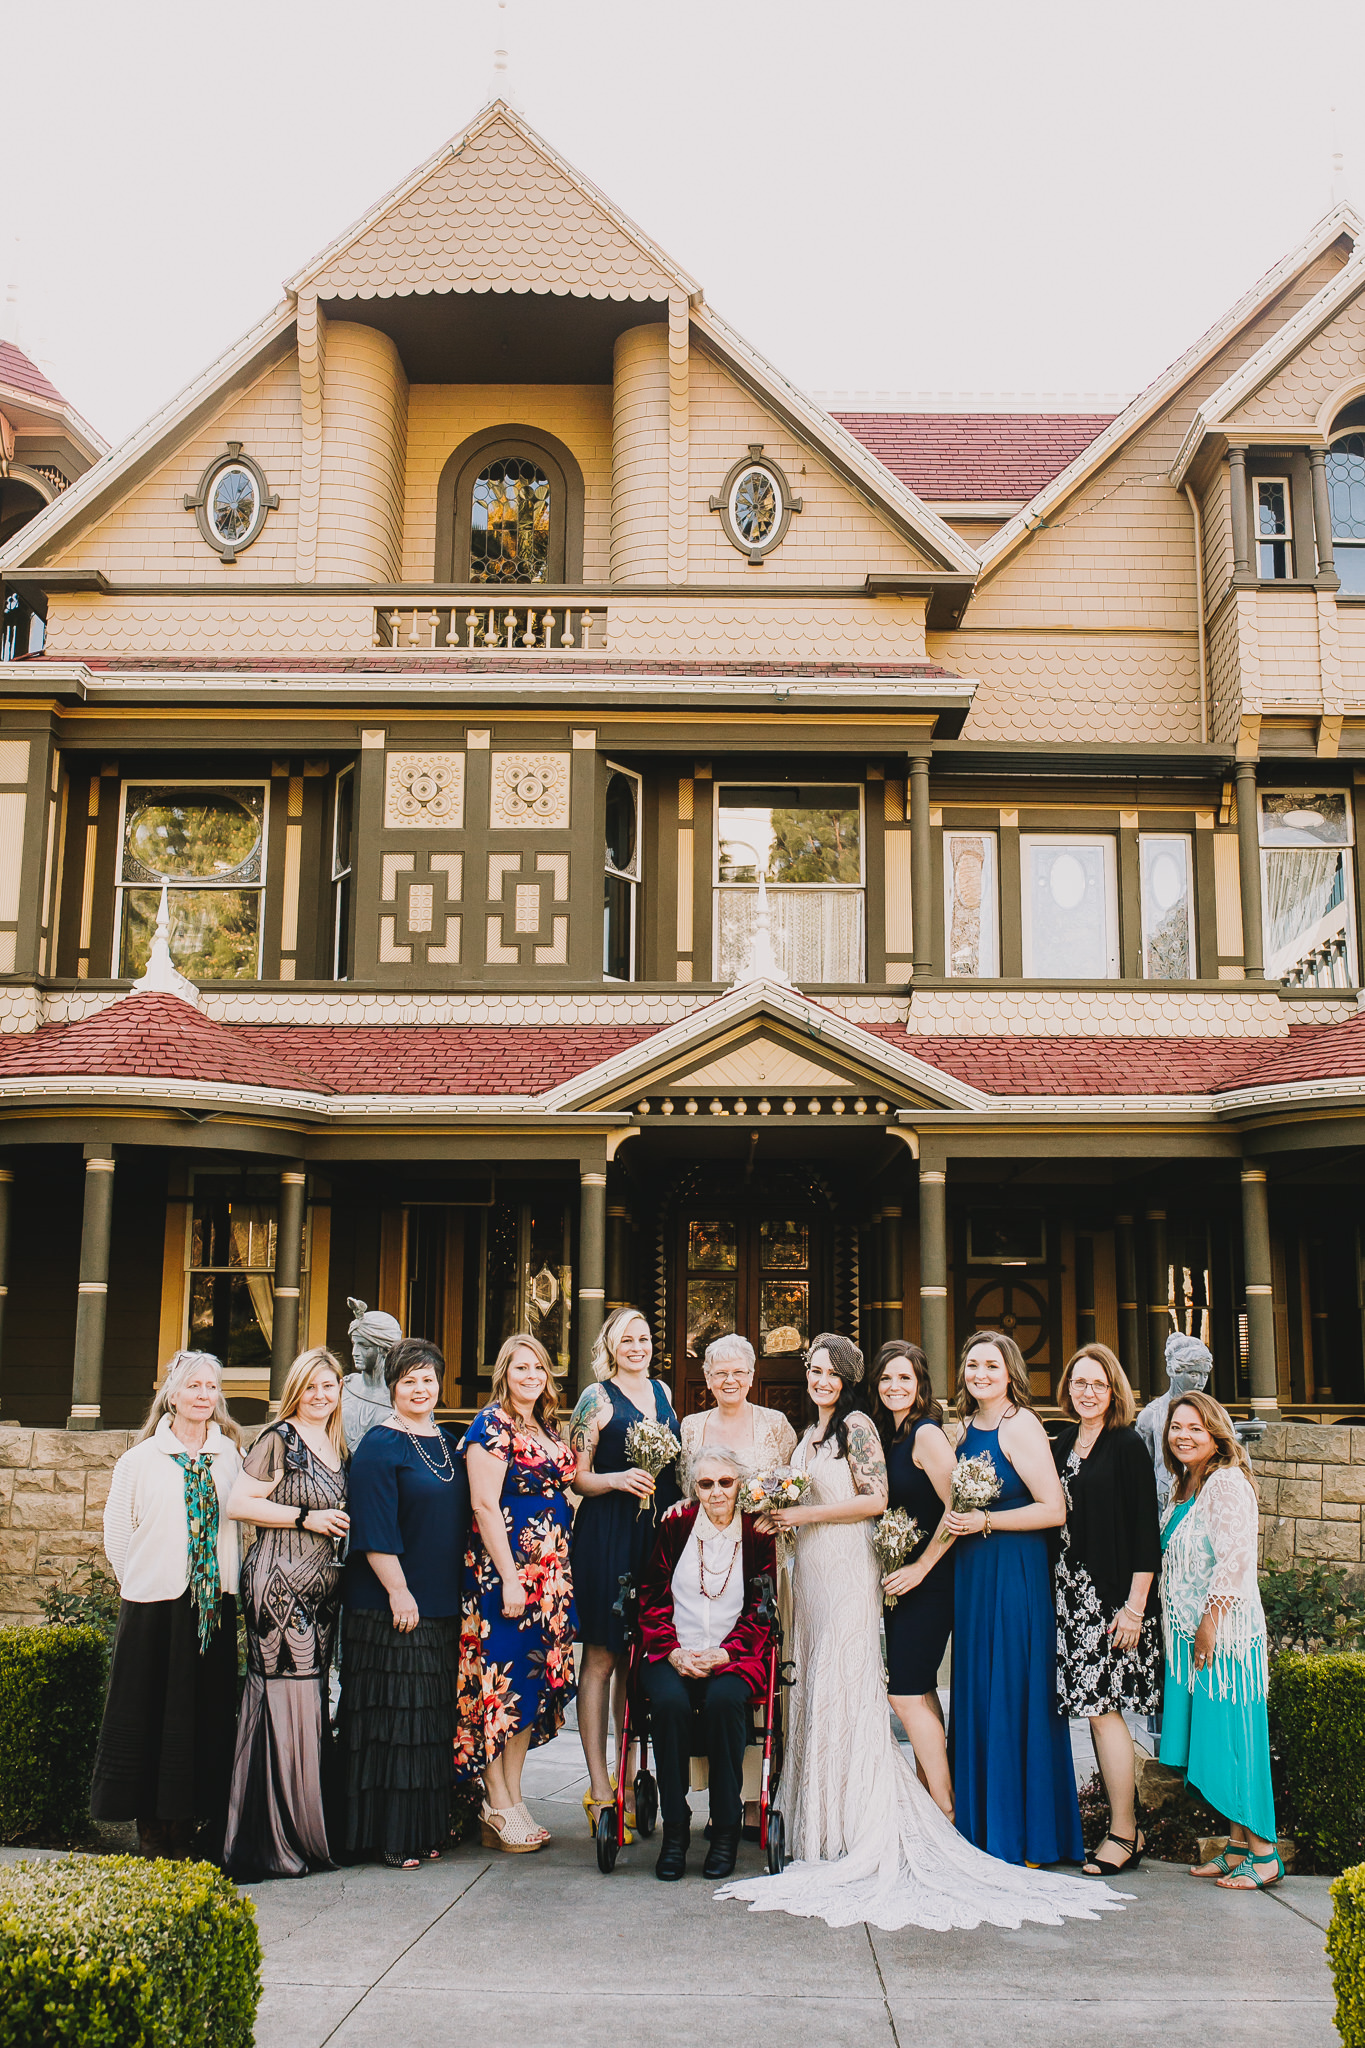 Archer Inspired Photography Sara and Aaron Winchester Mystery House NorCal San Jose California Wedding Photographer-253.jpg